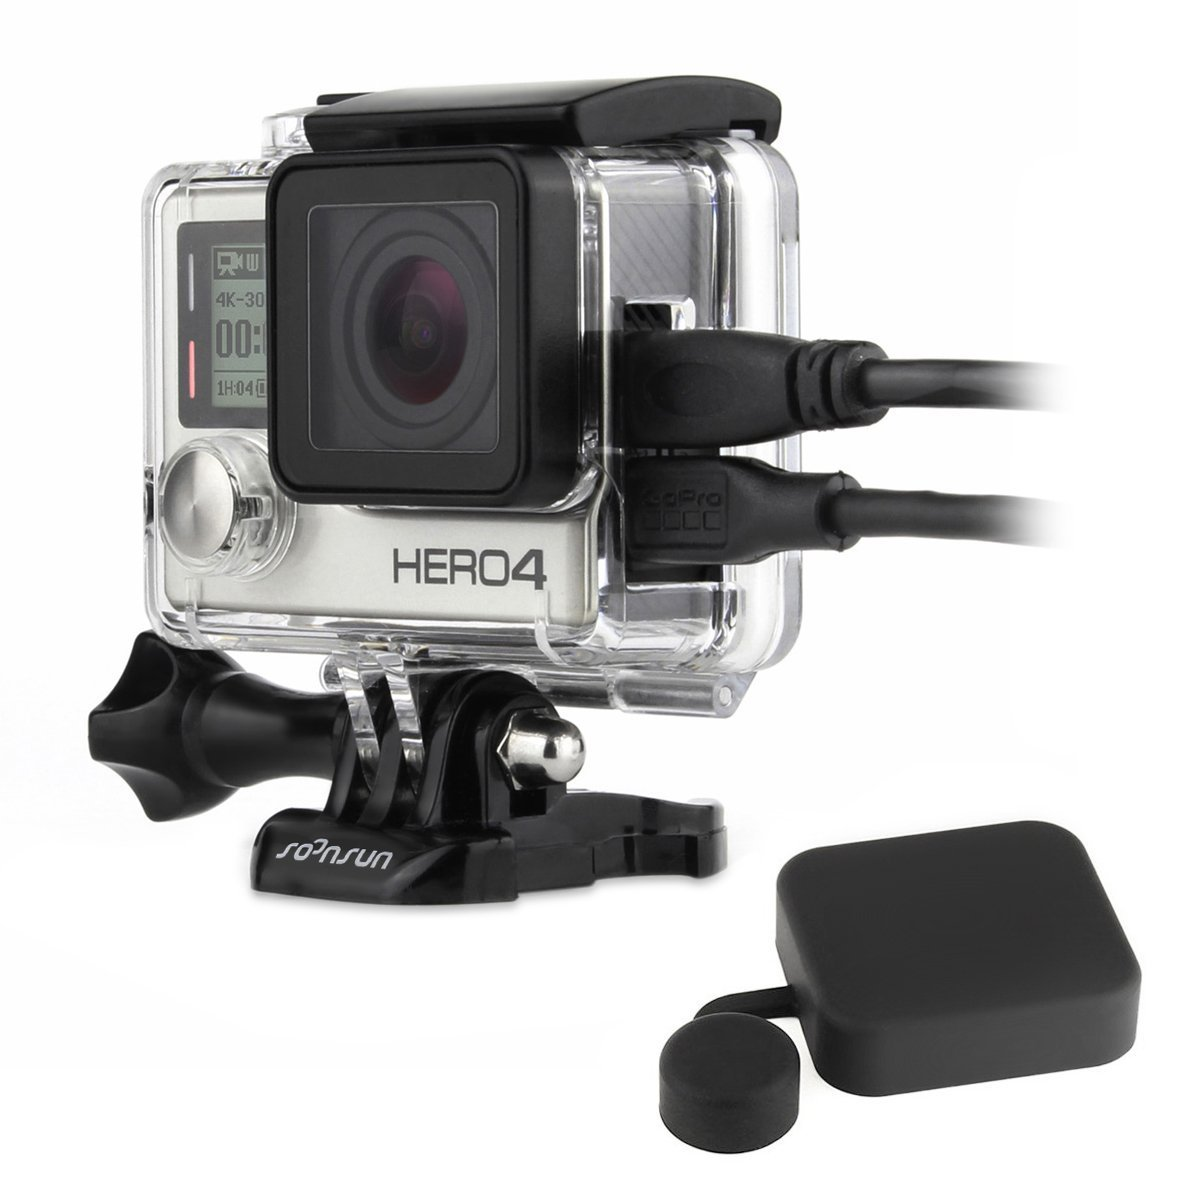 SOONSUN Side Open Protective Skeleton Housing Case with LCD Touch Backdoor for GoPro Hero 4 Silver